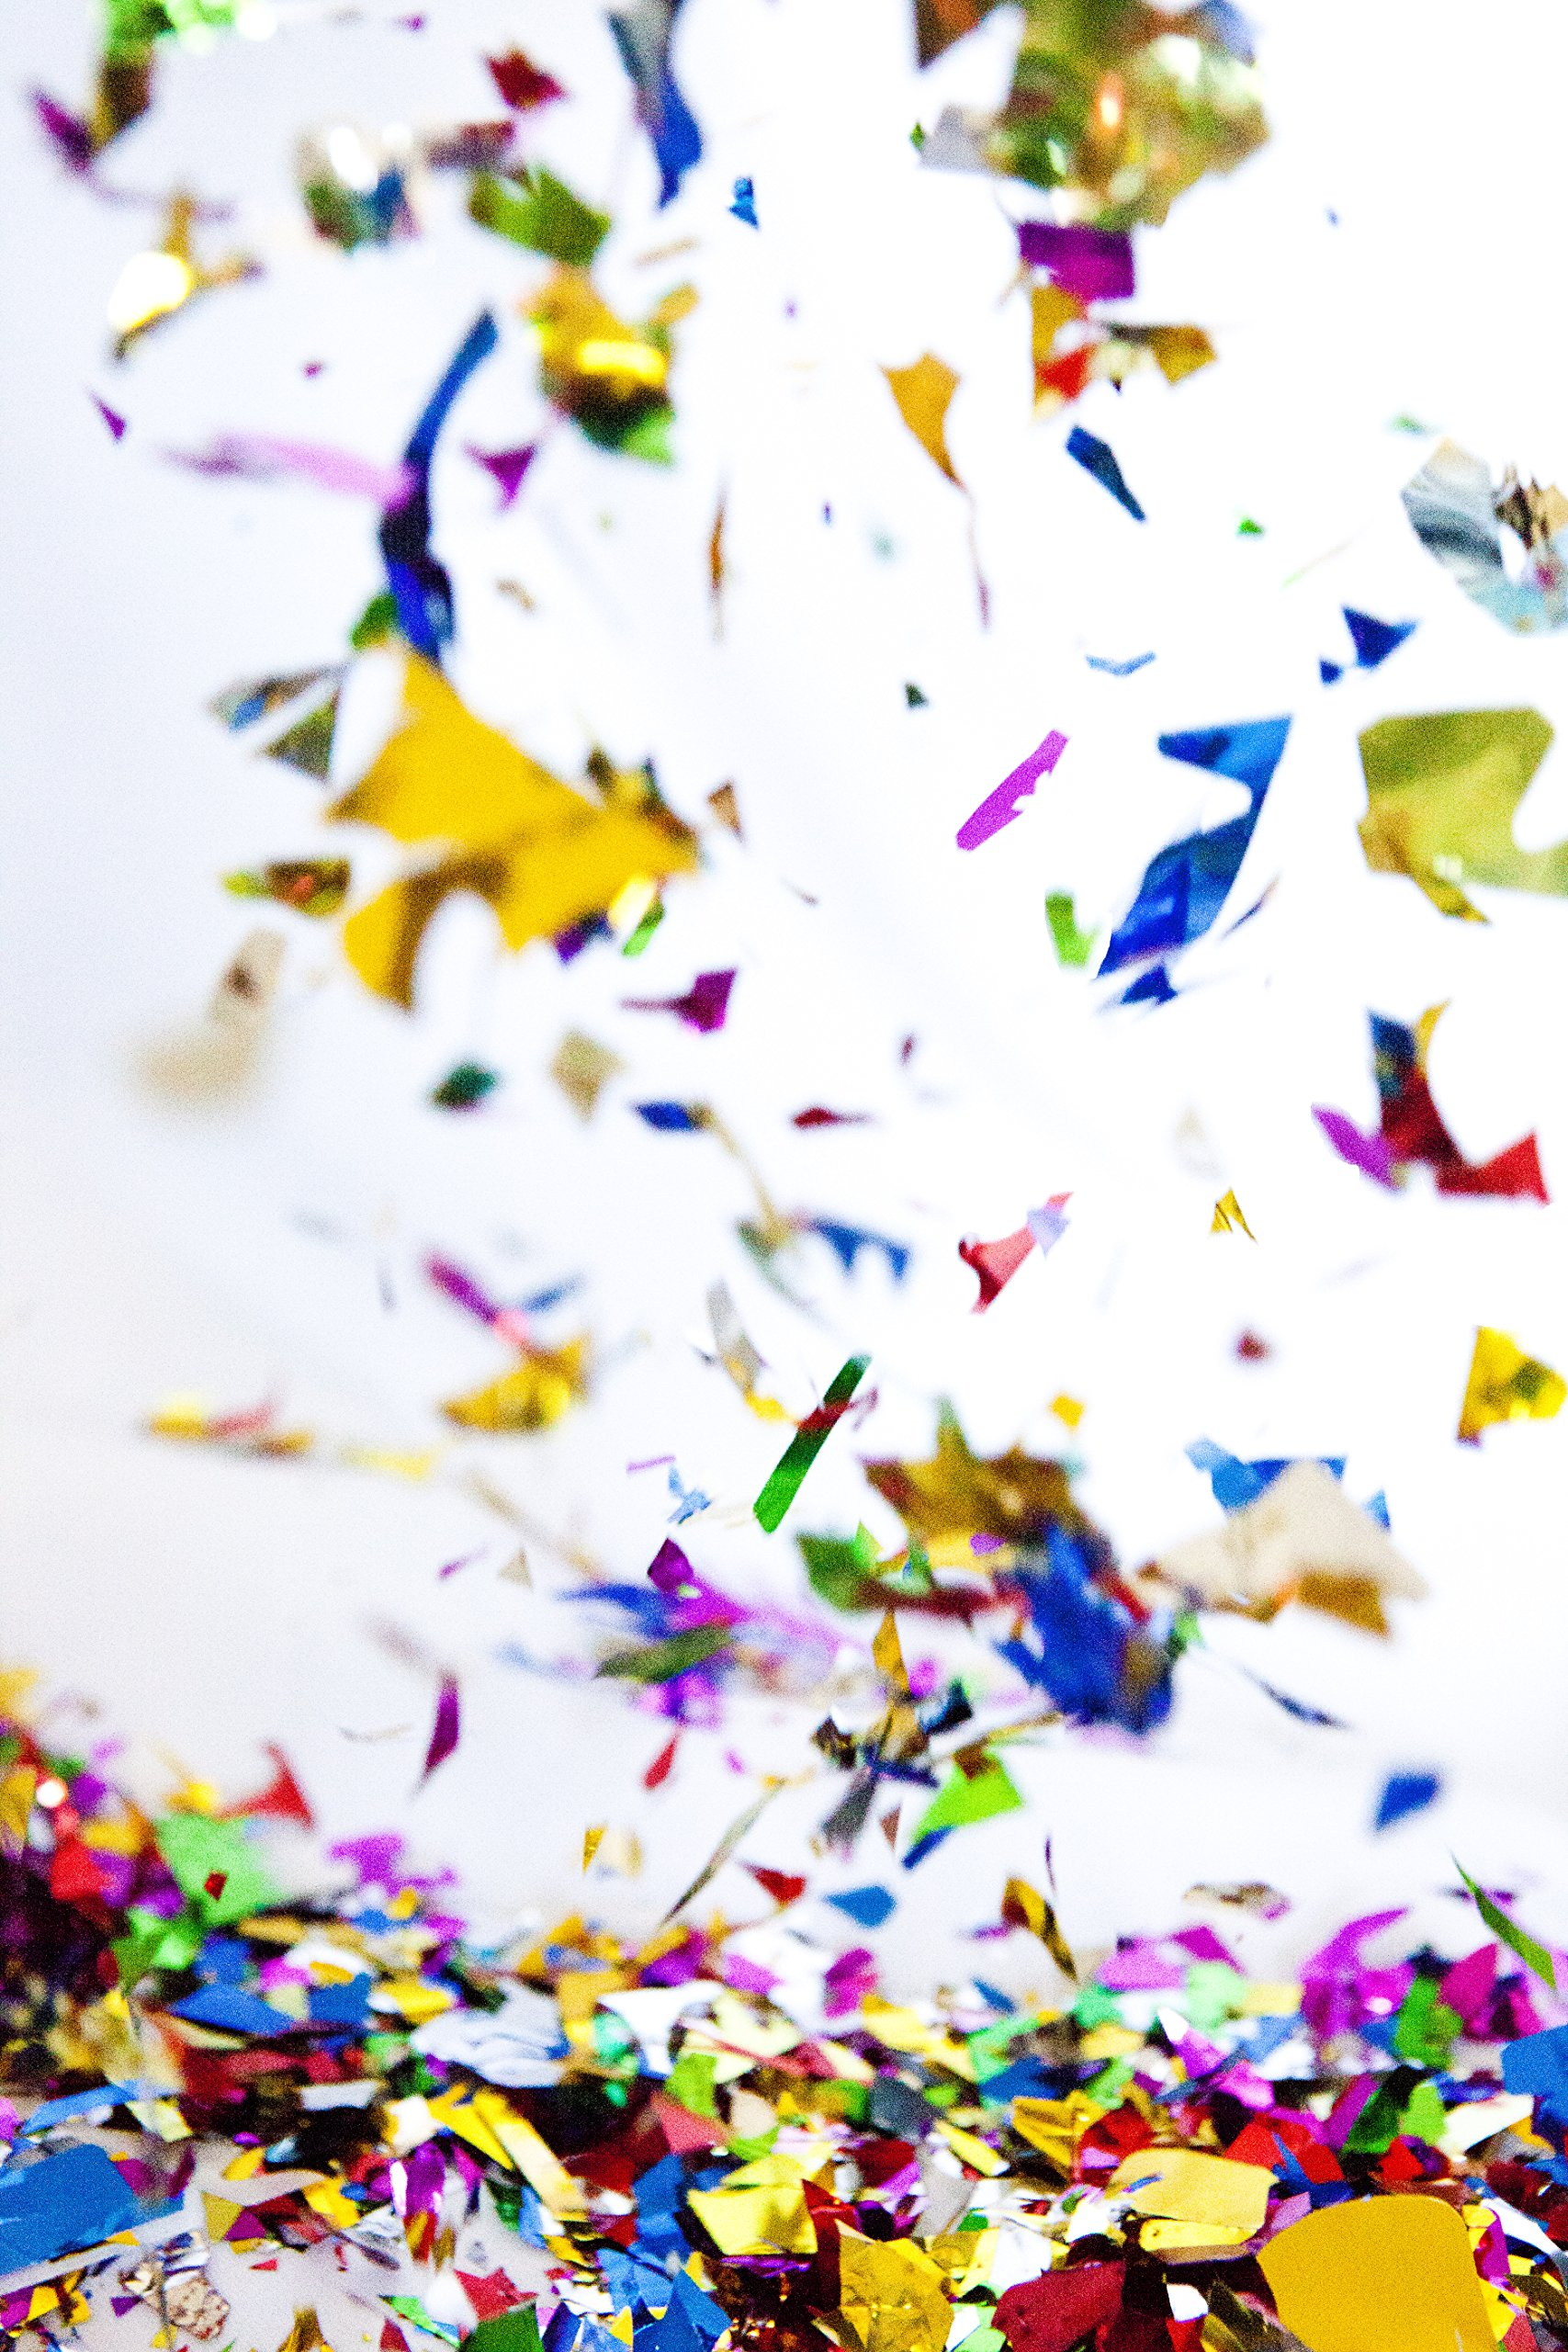 Metallic Shiny ConfettiSparkly Rainbow Confetti, Bulk Jumbo Bag. Made from shiny, smooth, lightweight shredded foil. For birthdays, engagements, and surprise parties.